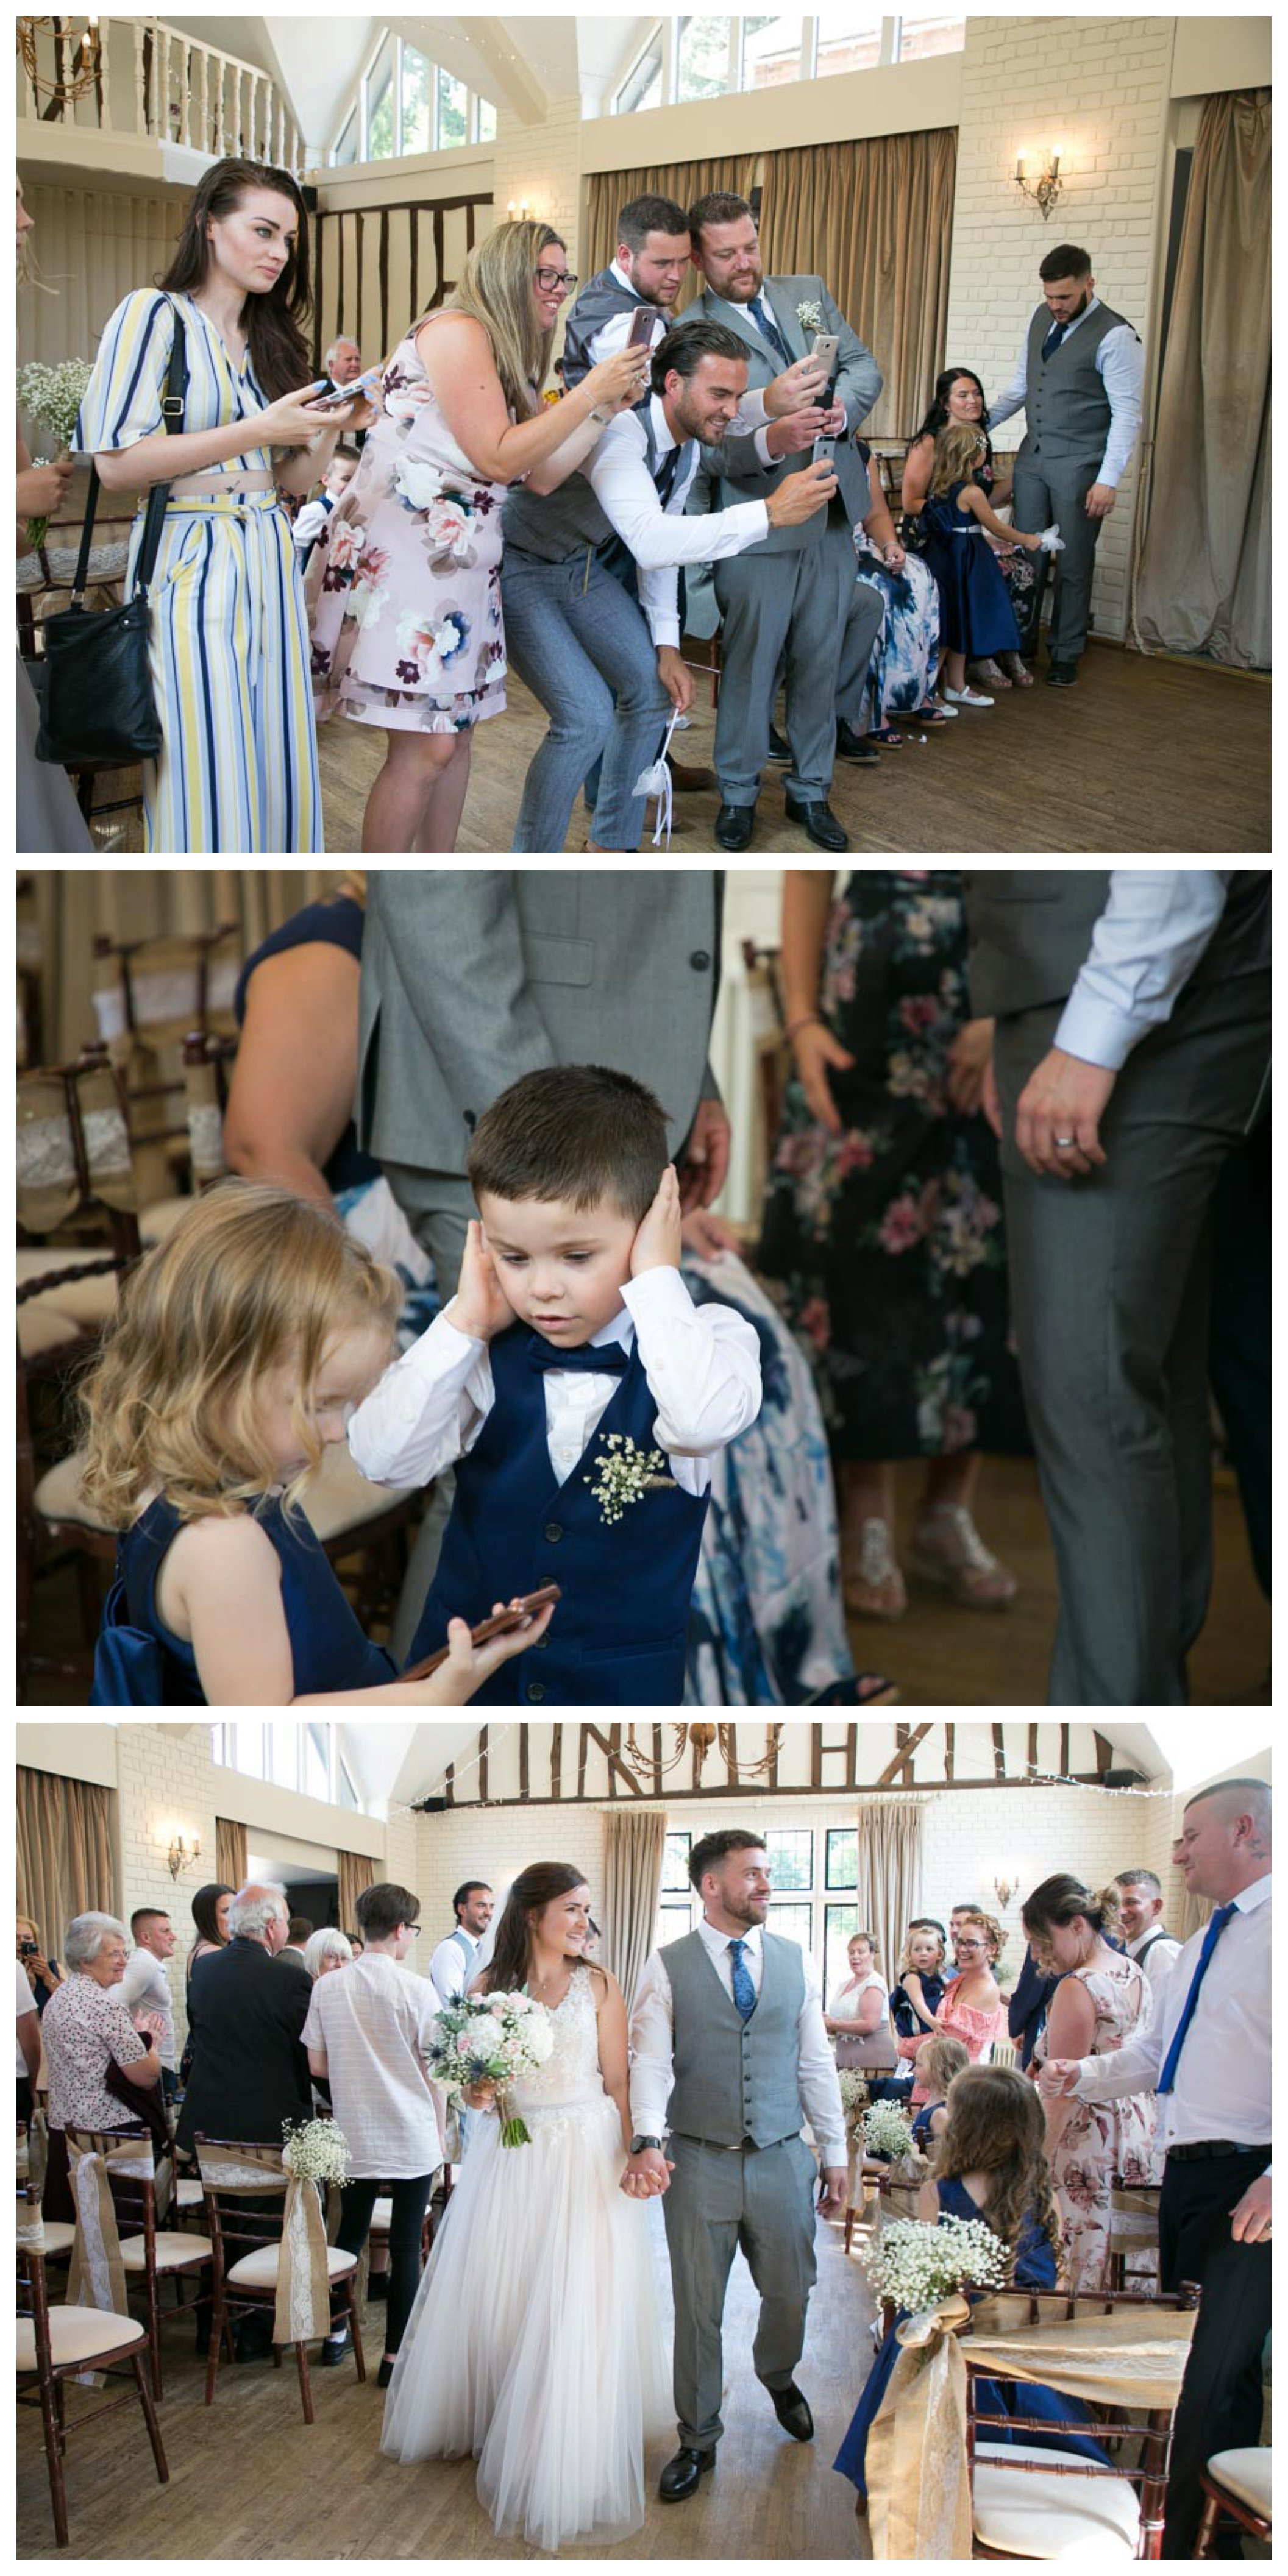 fun photos of wedding ceremony as lots of guests take photos and couple walk down the aisle